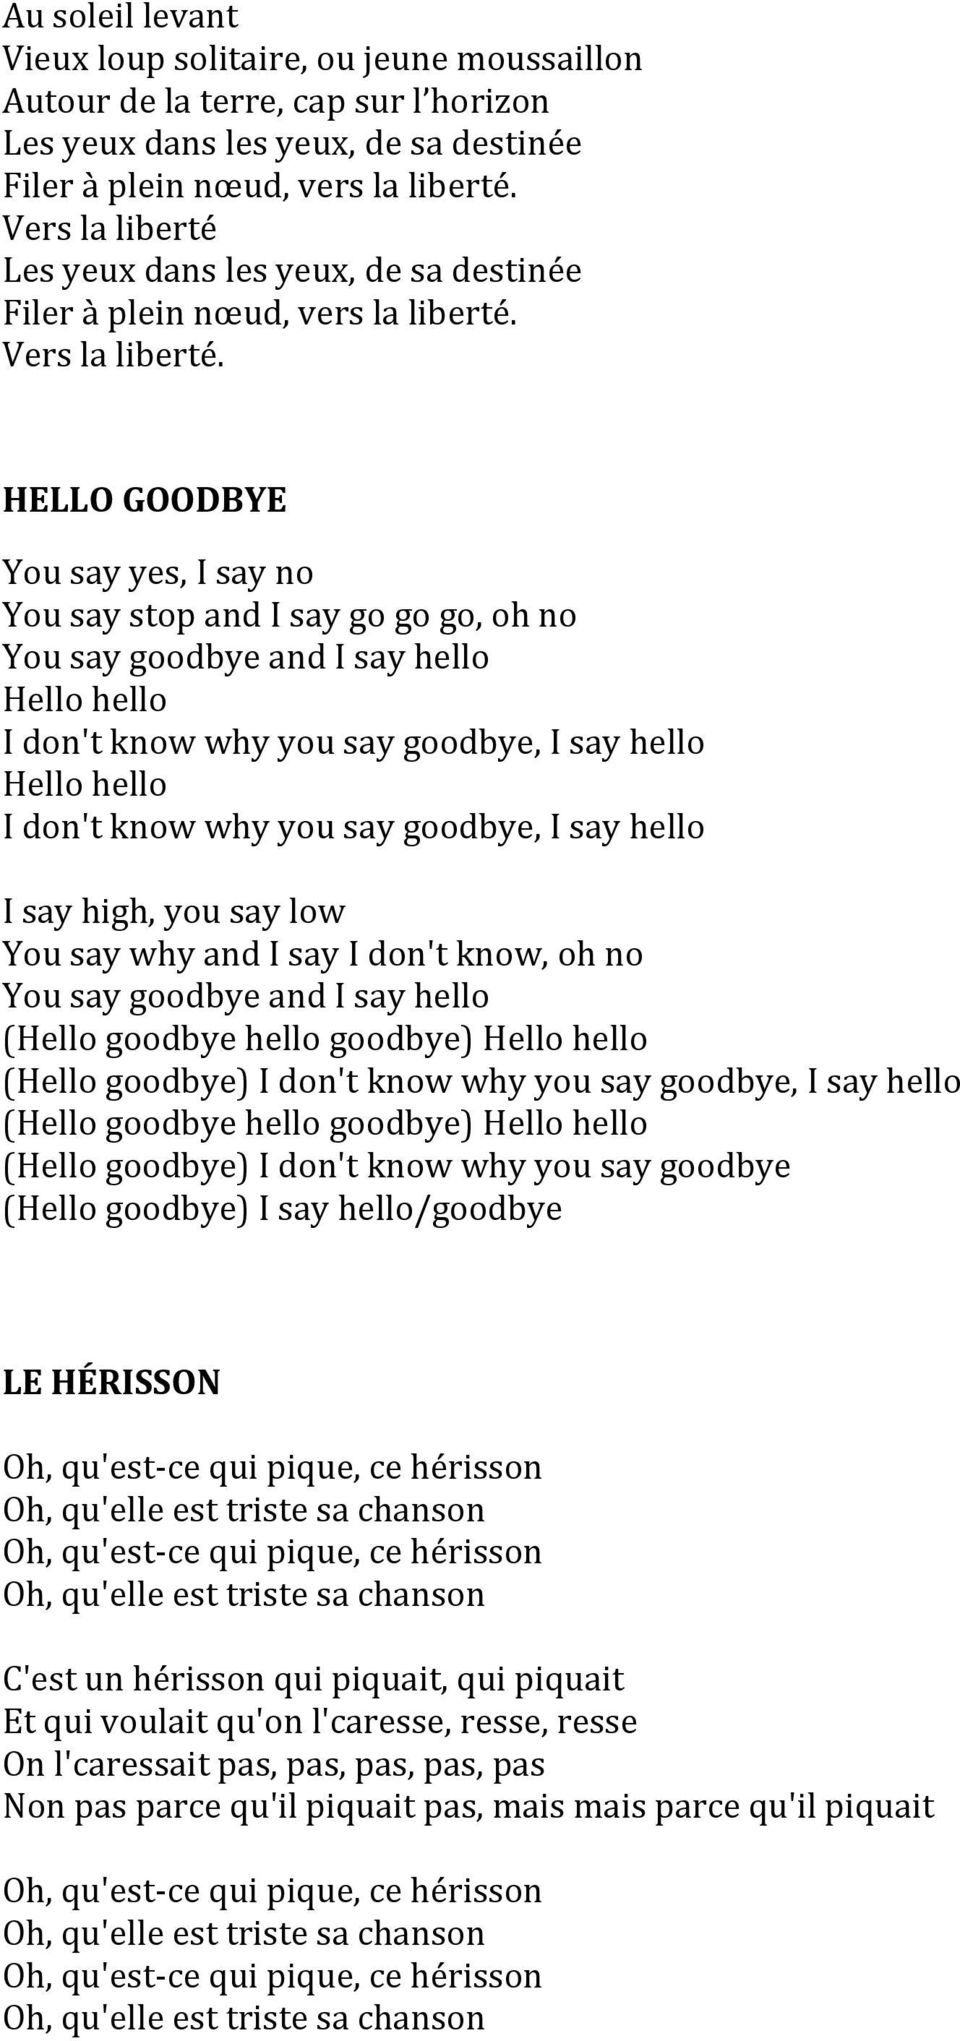 HELLO GOODBYE You say yes, I say no You say stop and I say go go go, oh no You say goodbye and I say hello Hello hello I don't know why you say goodbye, I say hello Hello hello I don't know why you